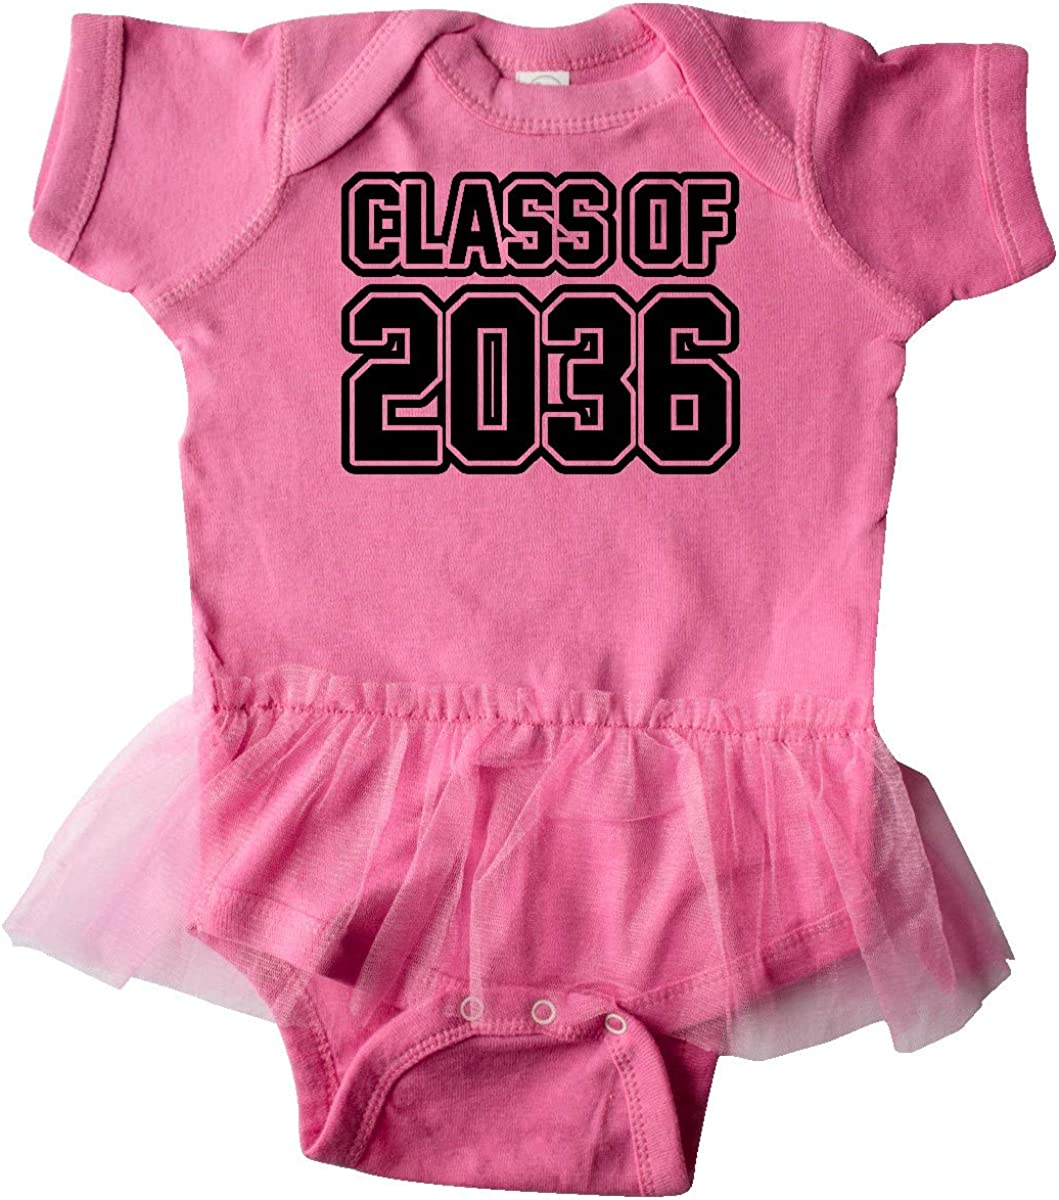 inktastic Class of 2036 in Black Outlined Text Infant Tutu Bodysuit